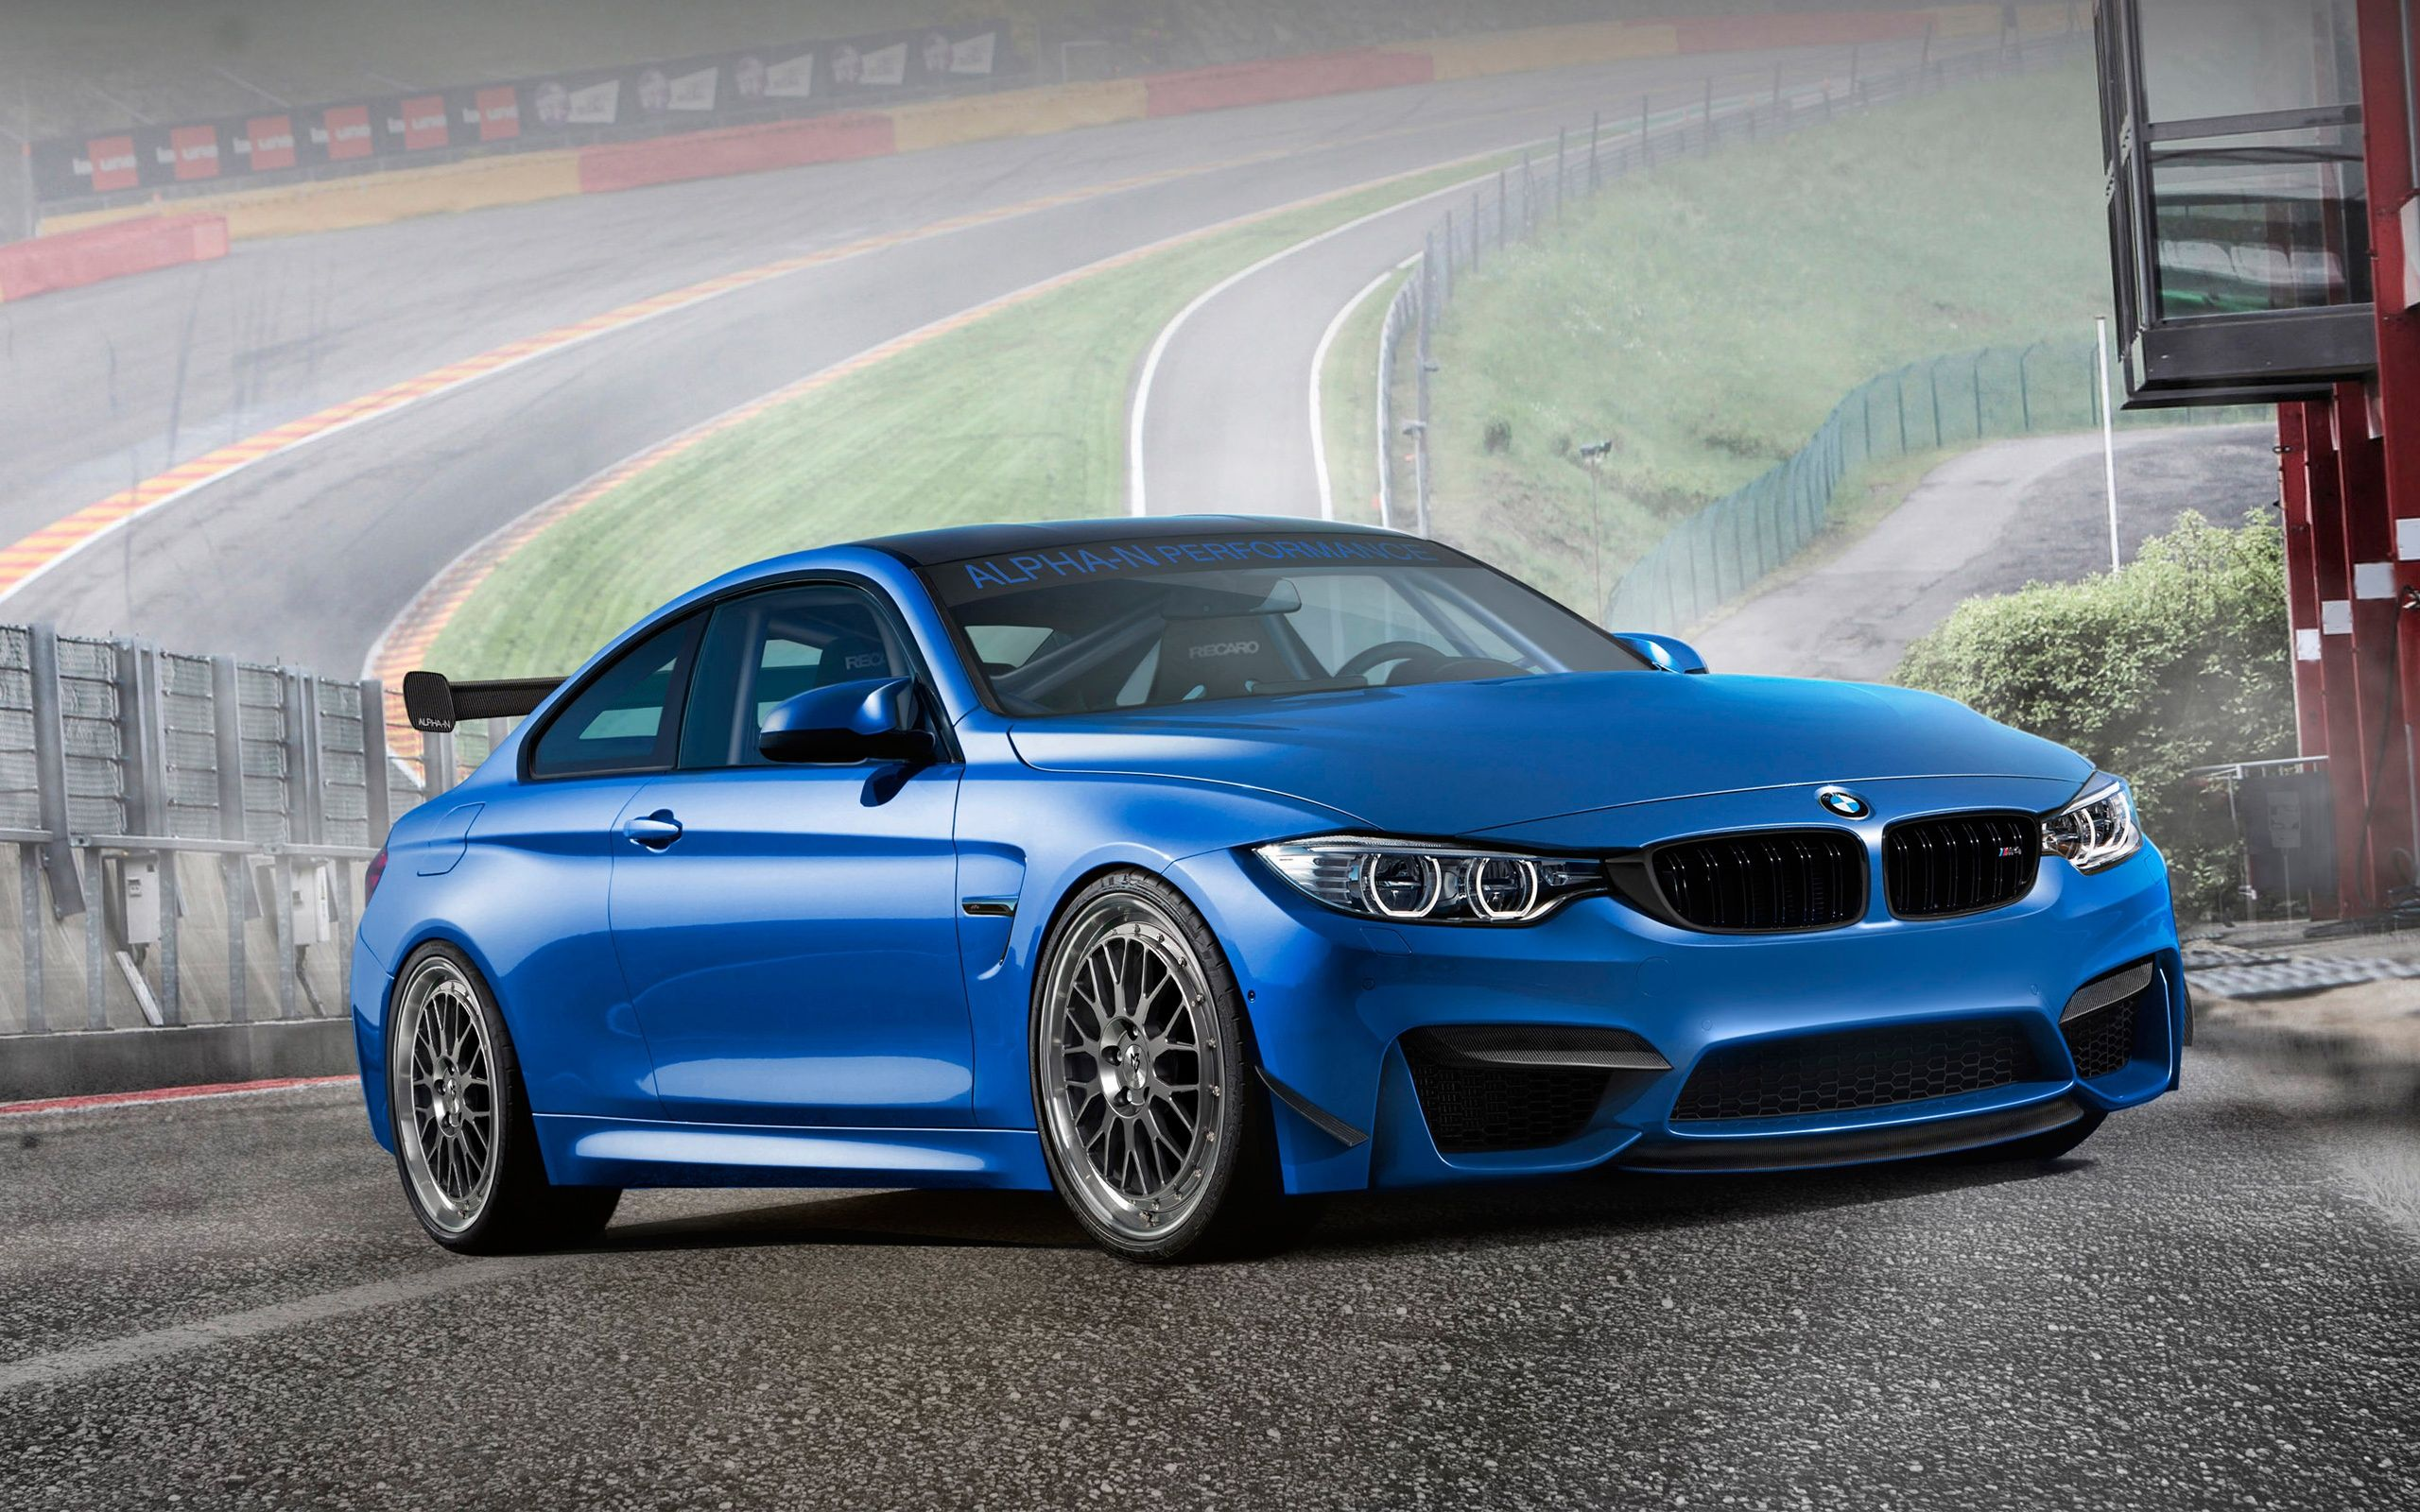 Bmw Cars Wallpapers 2015 Hd Bmw Car Pinterest Bmw Bmw M4 And Cars